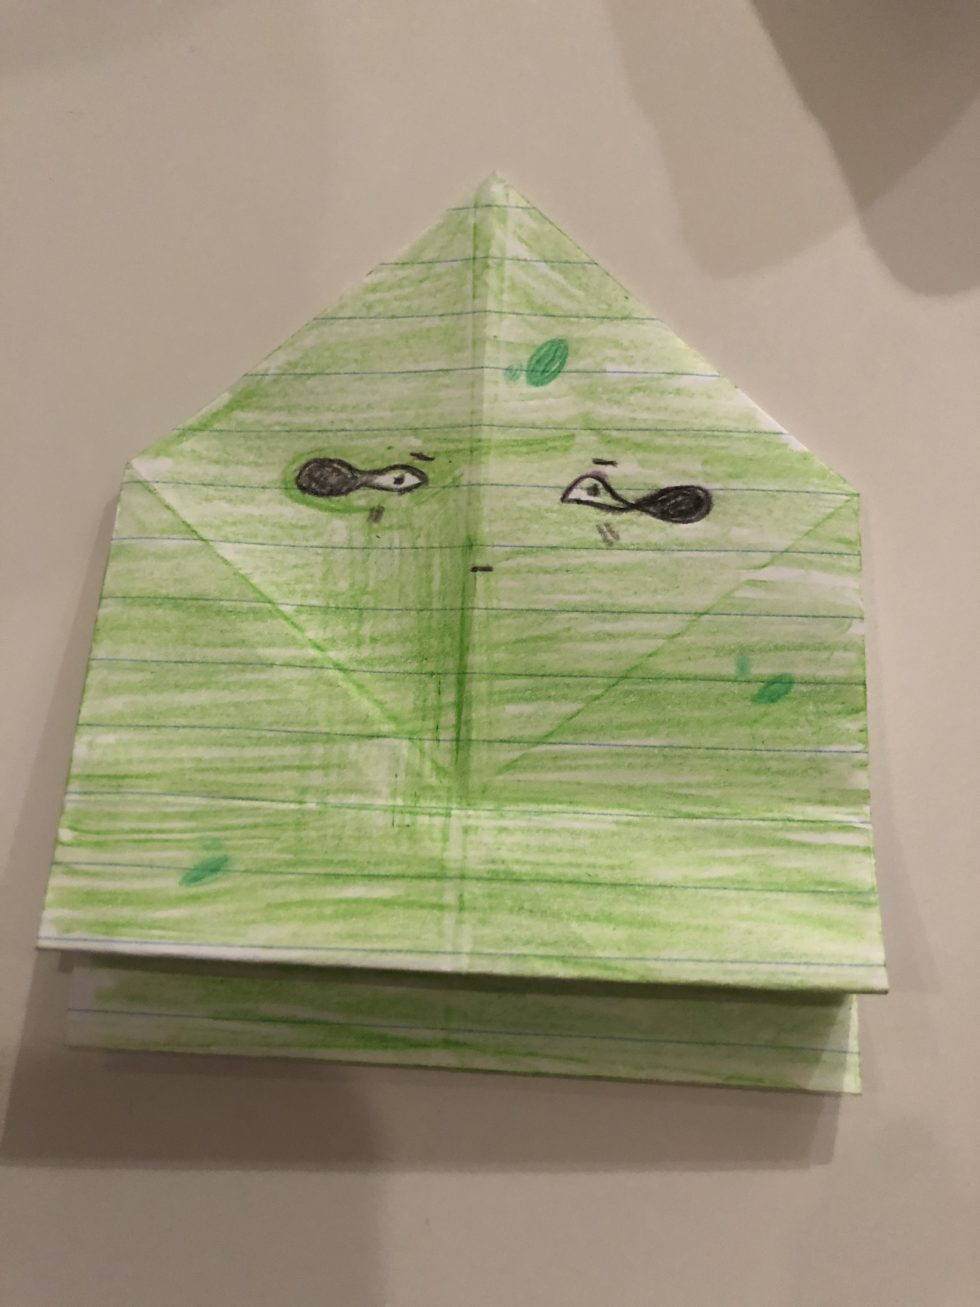 folded paper origami frog colored green with black eyes